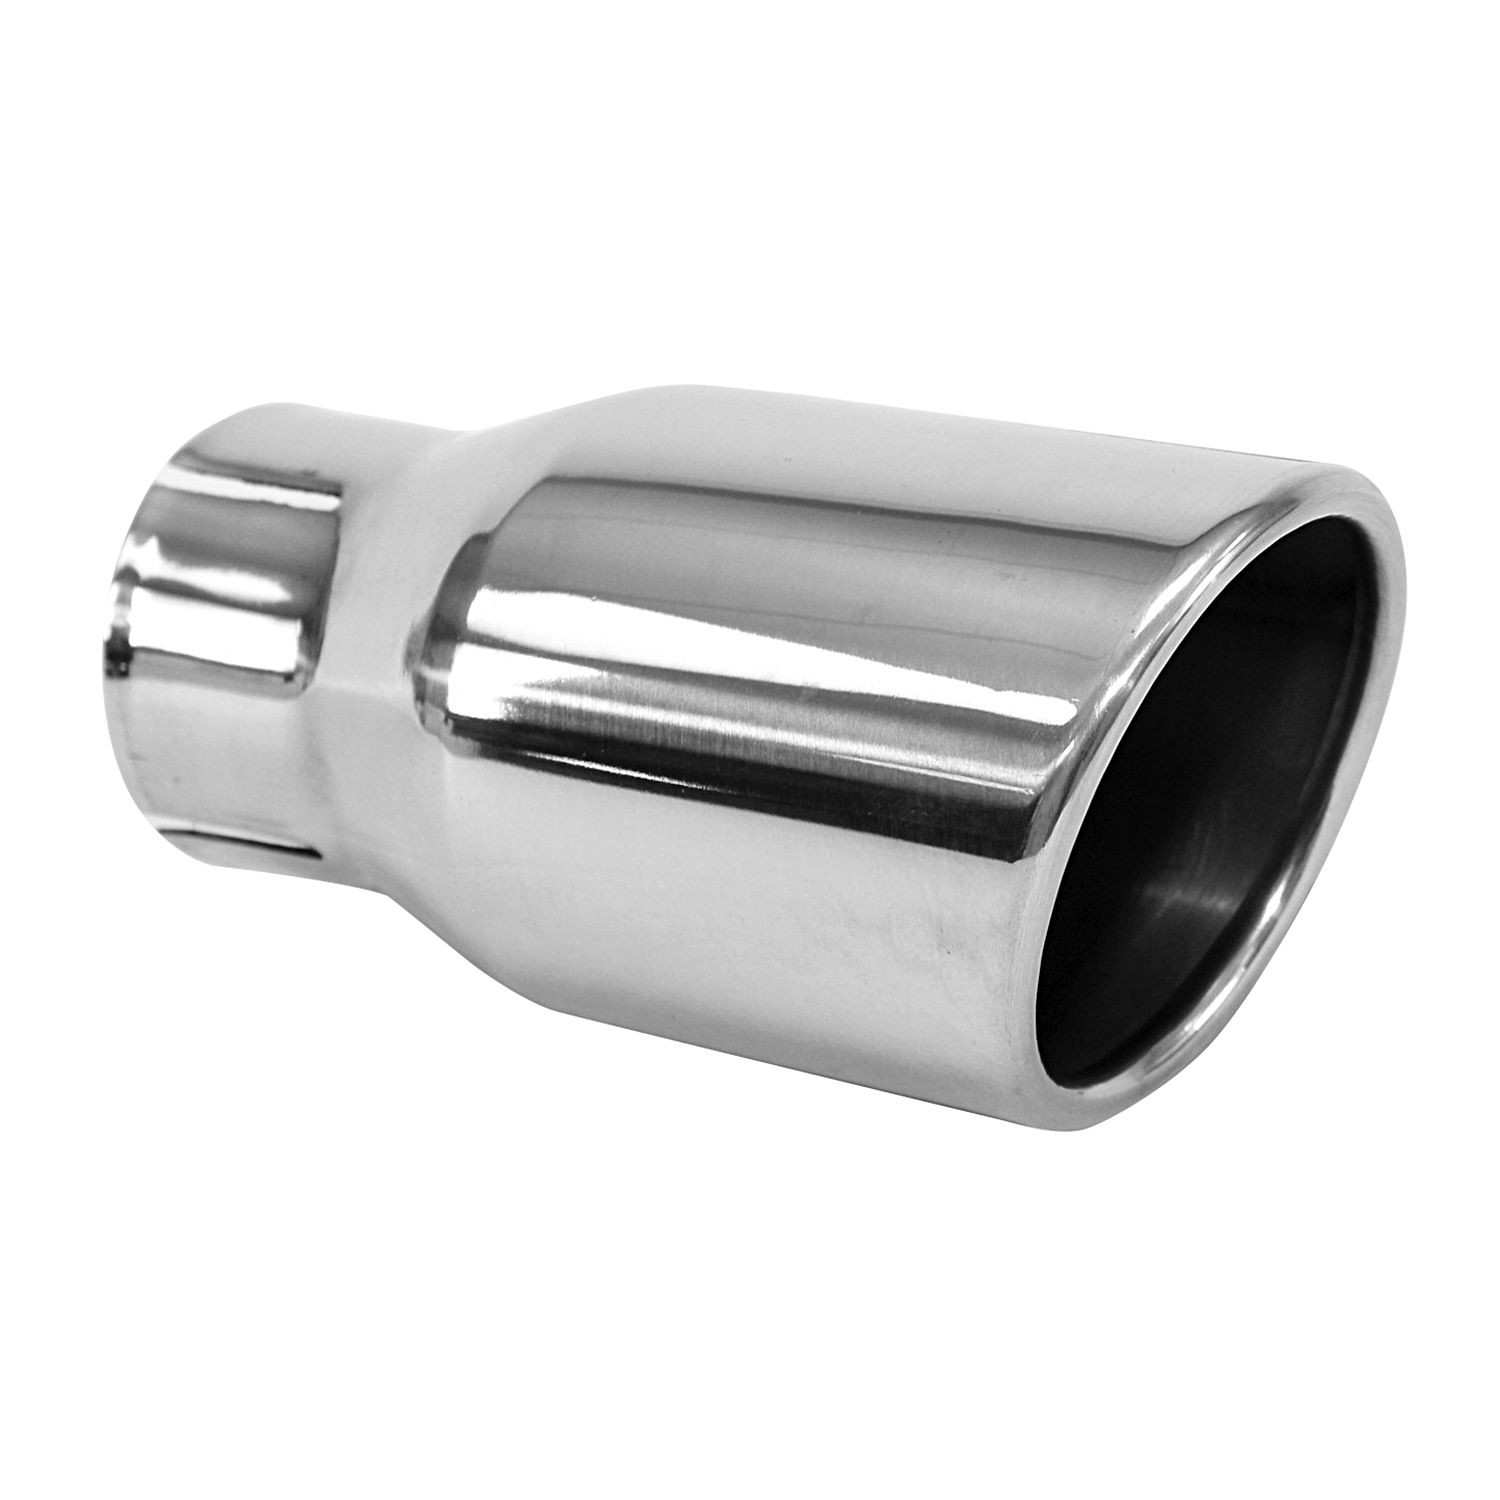 AP EXHAUST W/O FEDERAL CONVERTER - Exhaust Tail Pipe Tip - APK ST1254S